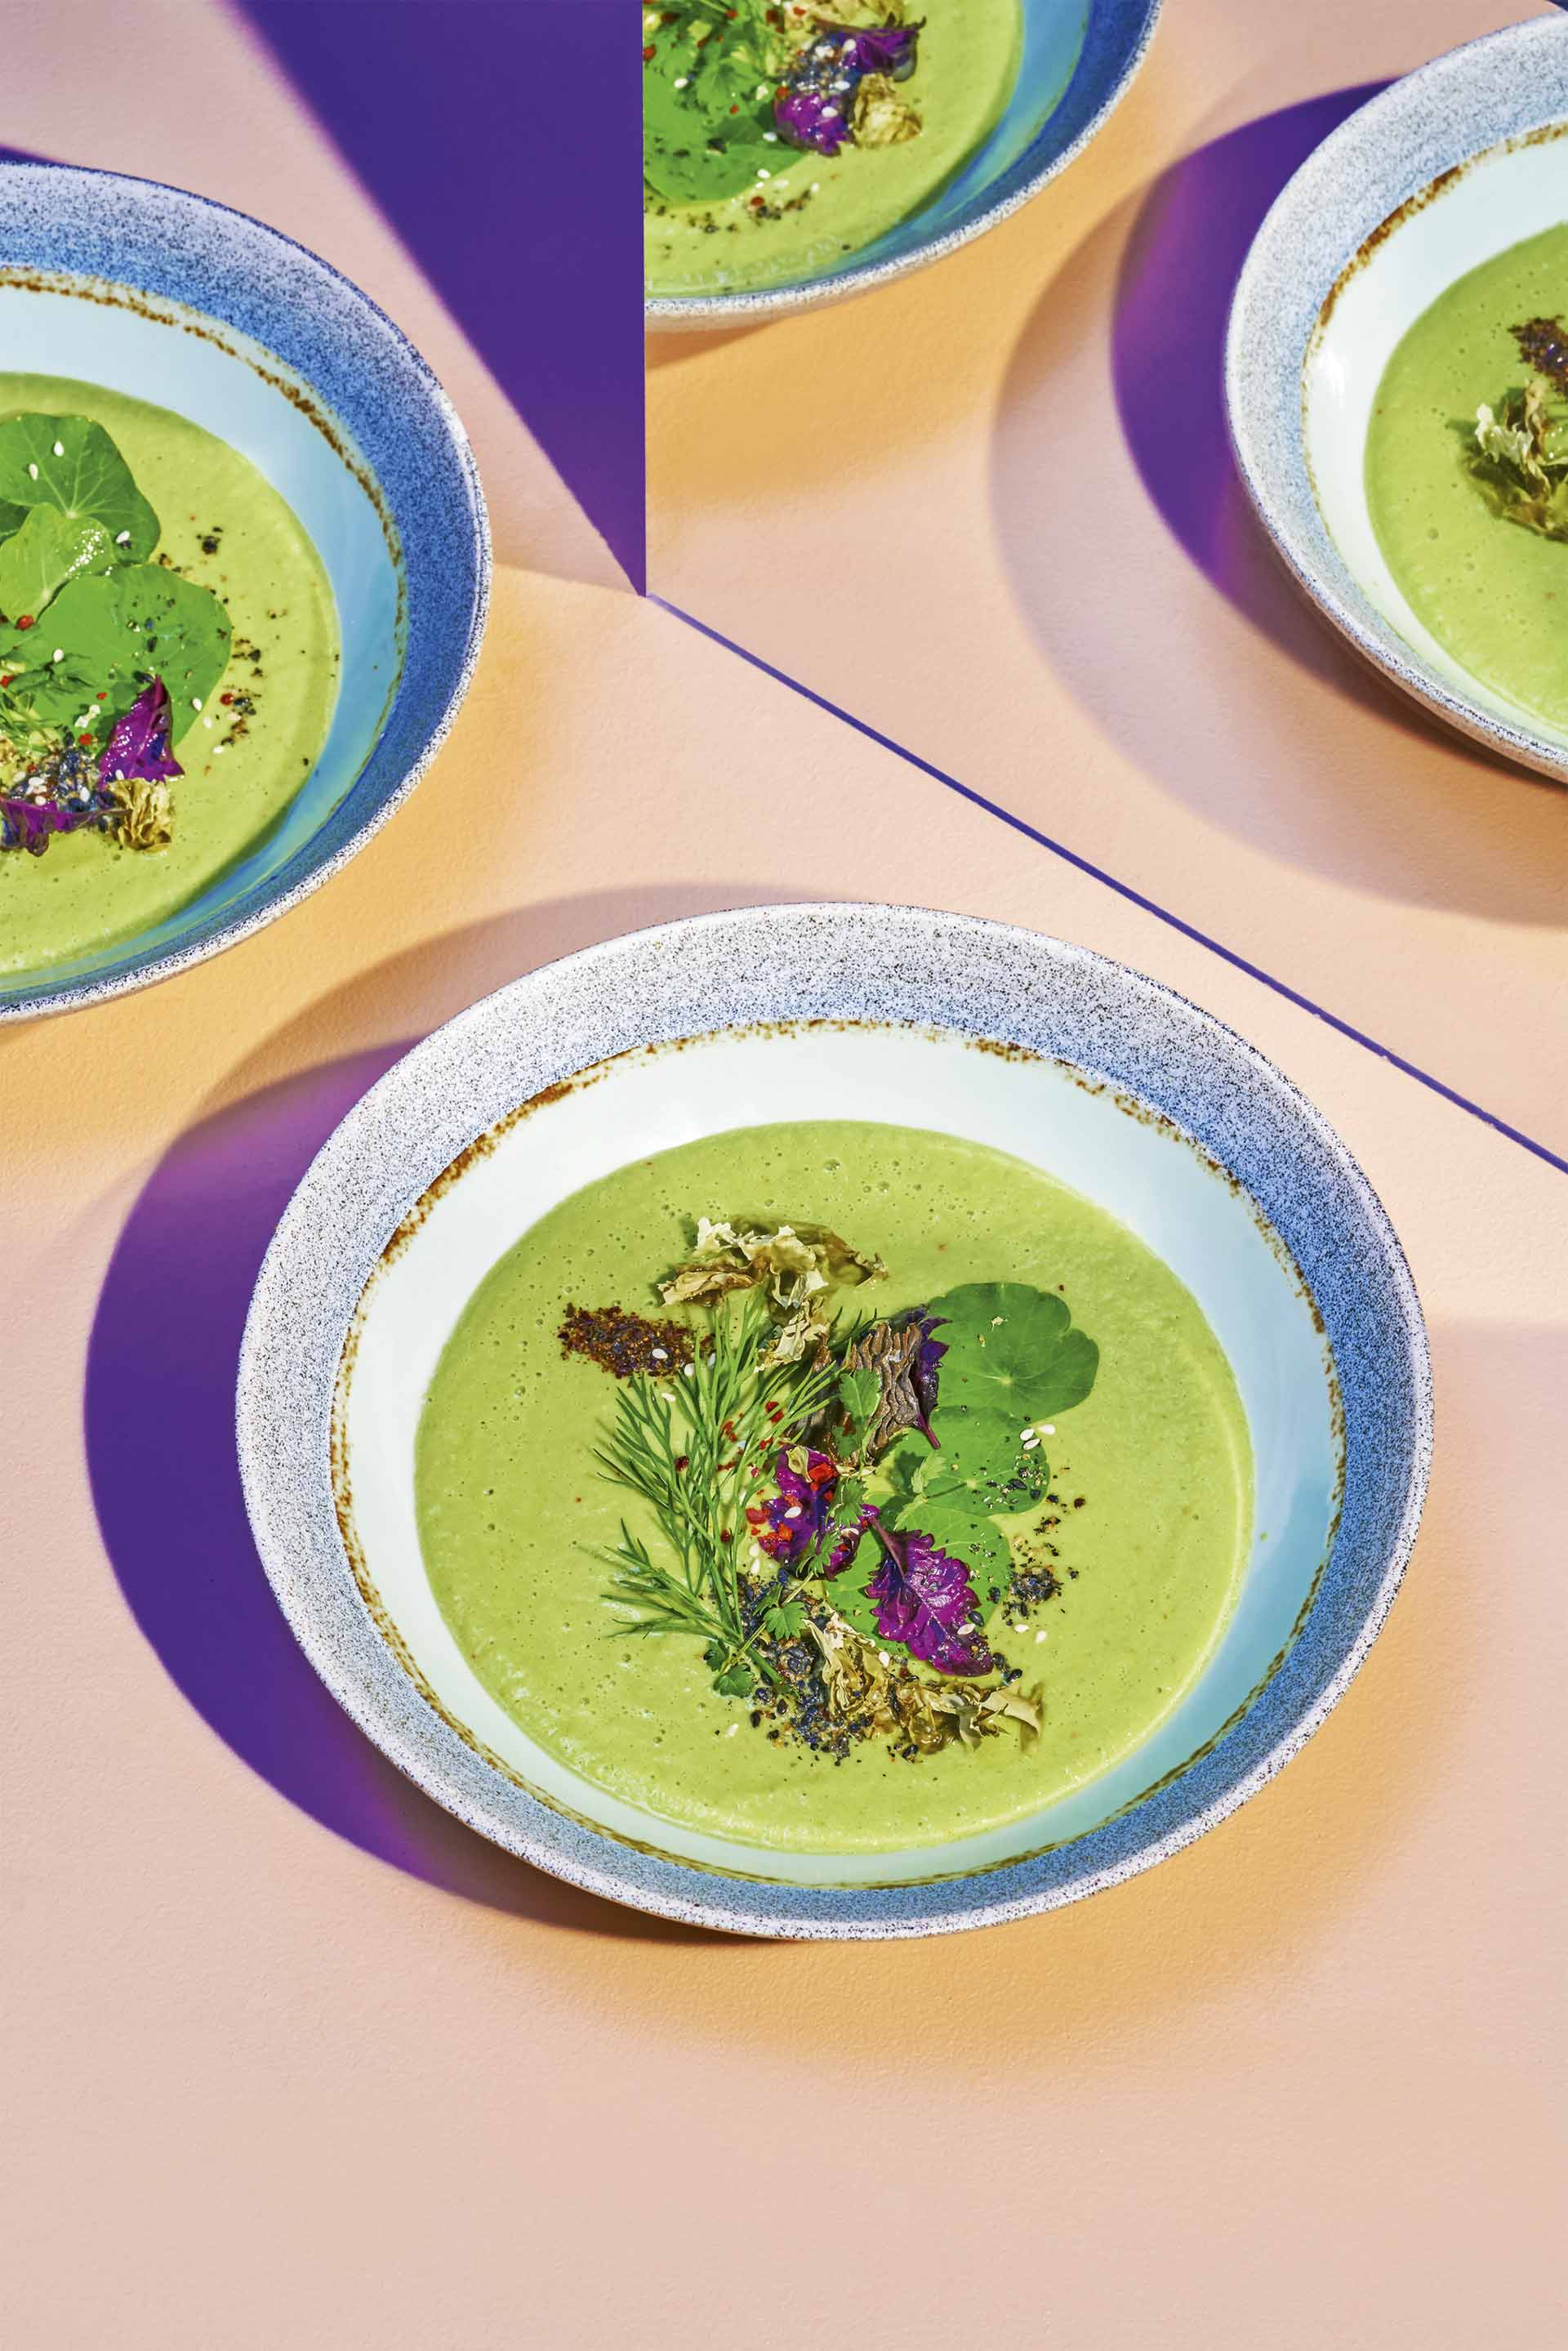 Cucumber-avocado gazpacho with nory by Jodi Moreno ©Gabriel Cabrera | Story on a Plate, Gestalten 2019